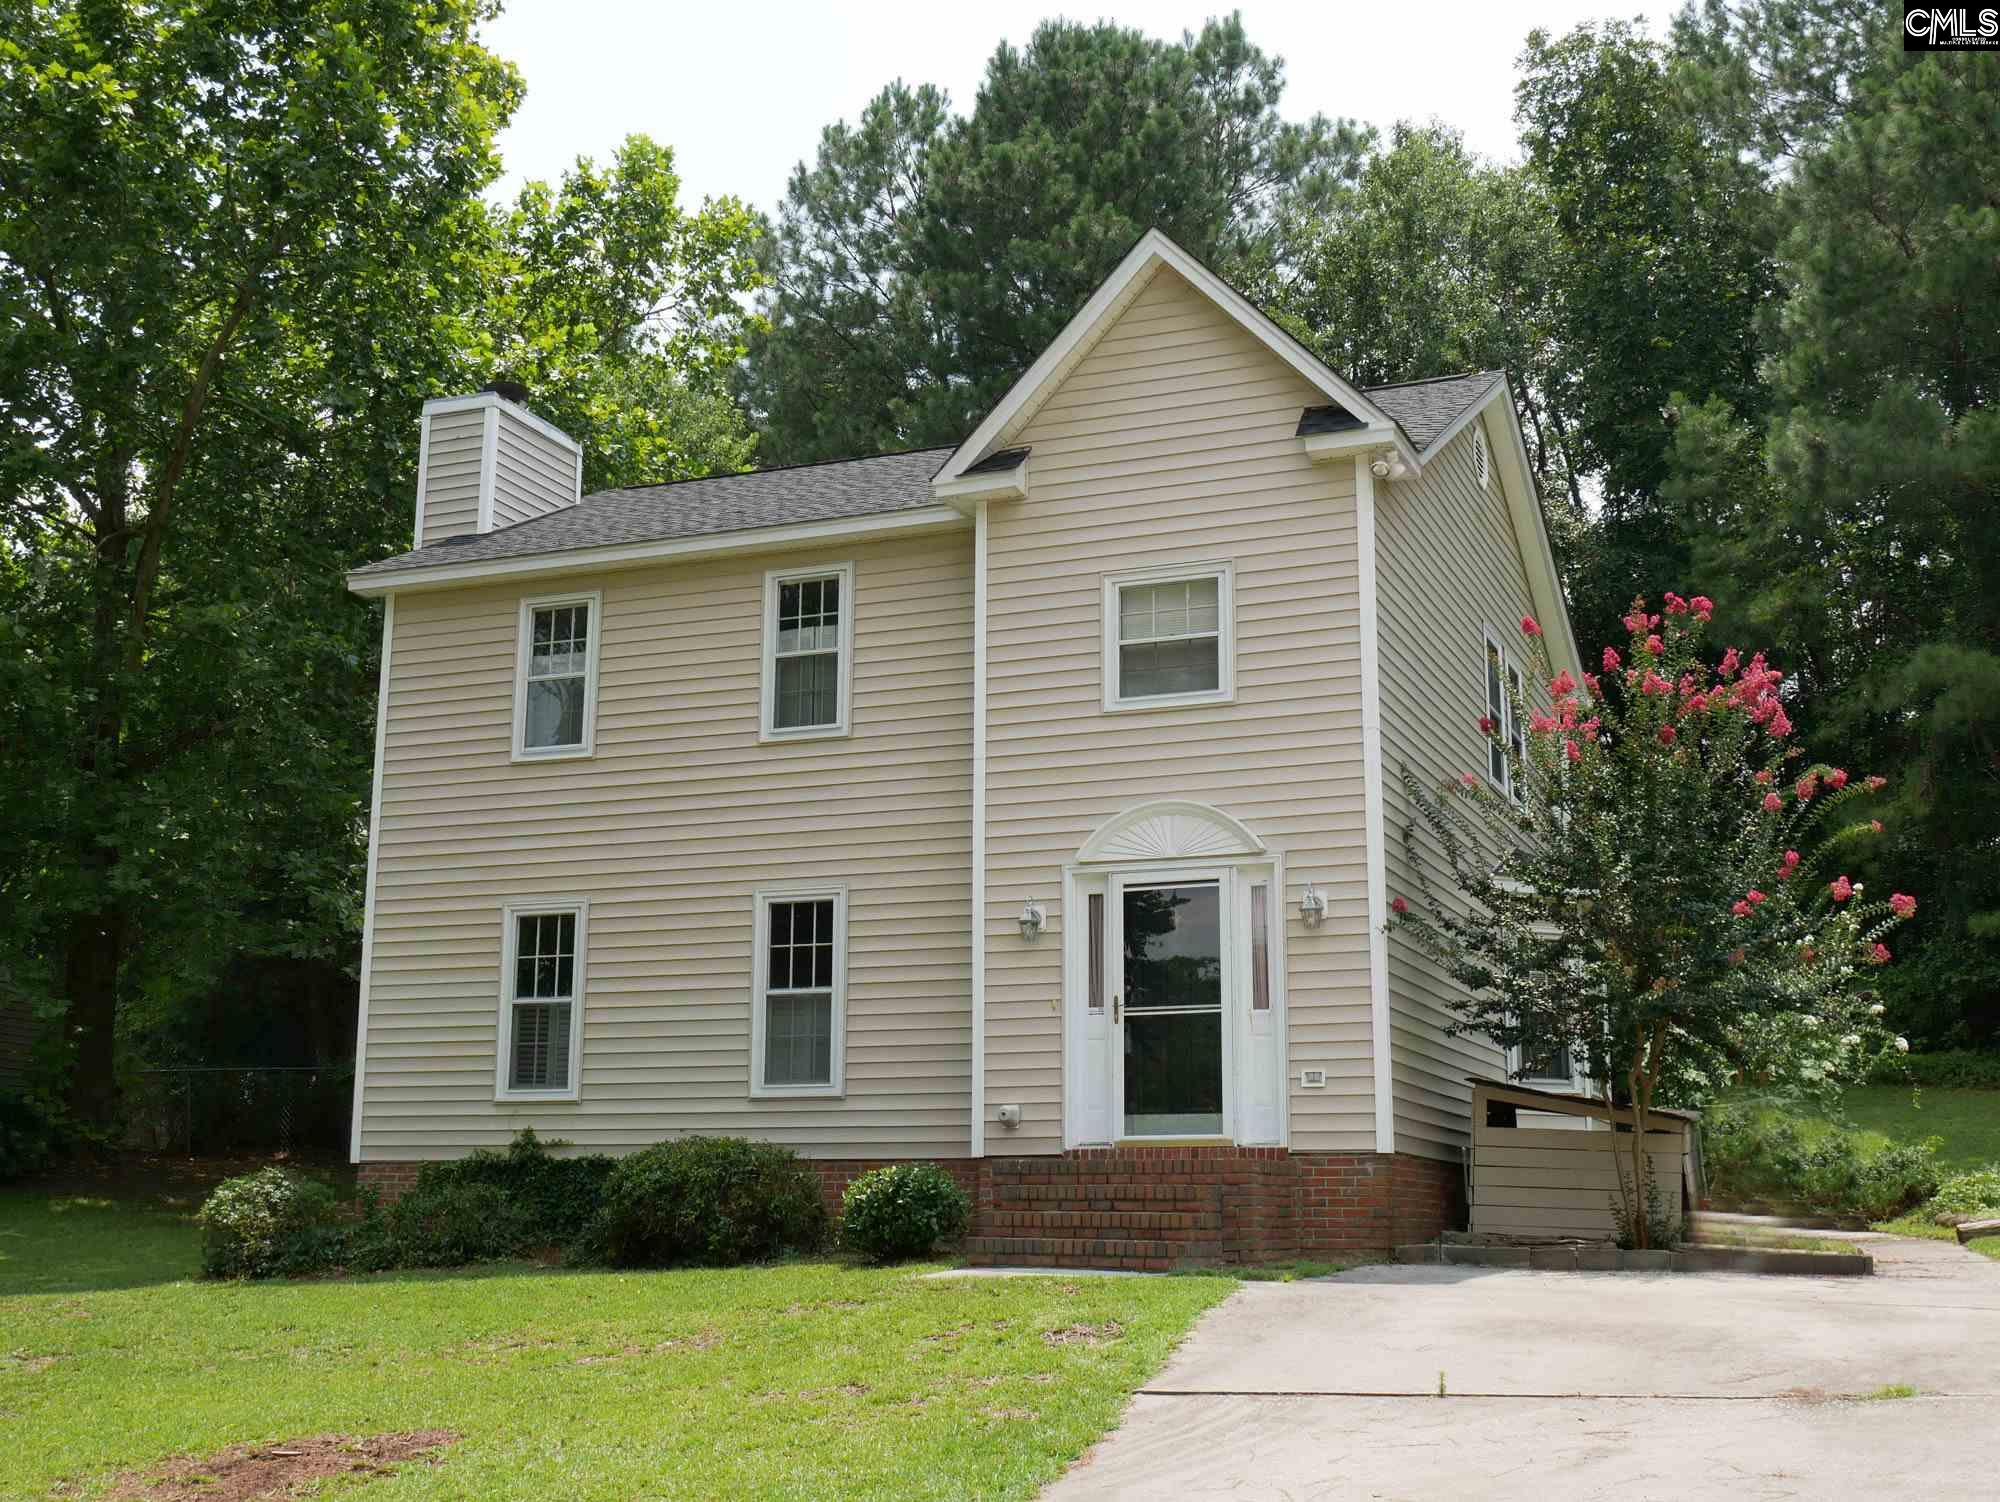 113  Great North Columbia, SC 29223